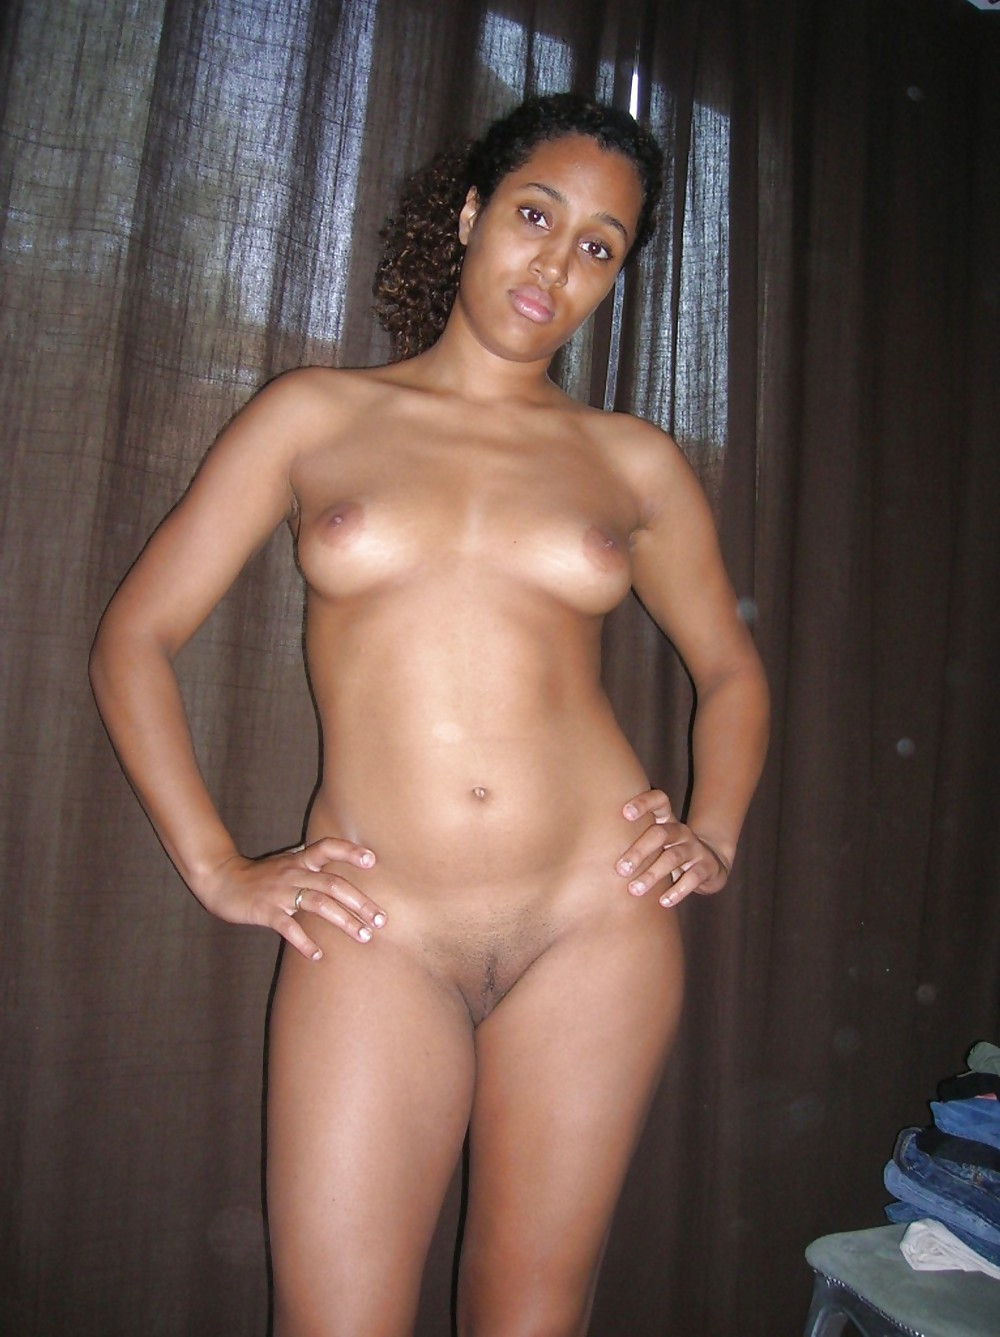 Pic of naked puerto rican girls — pic 9